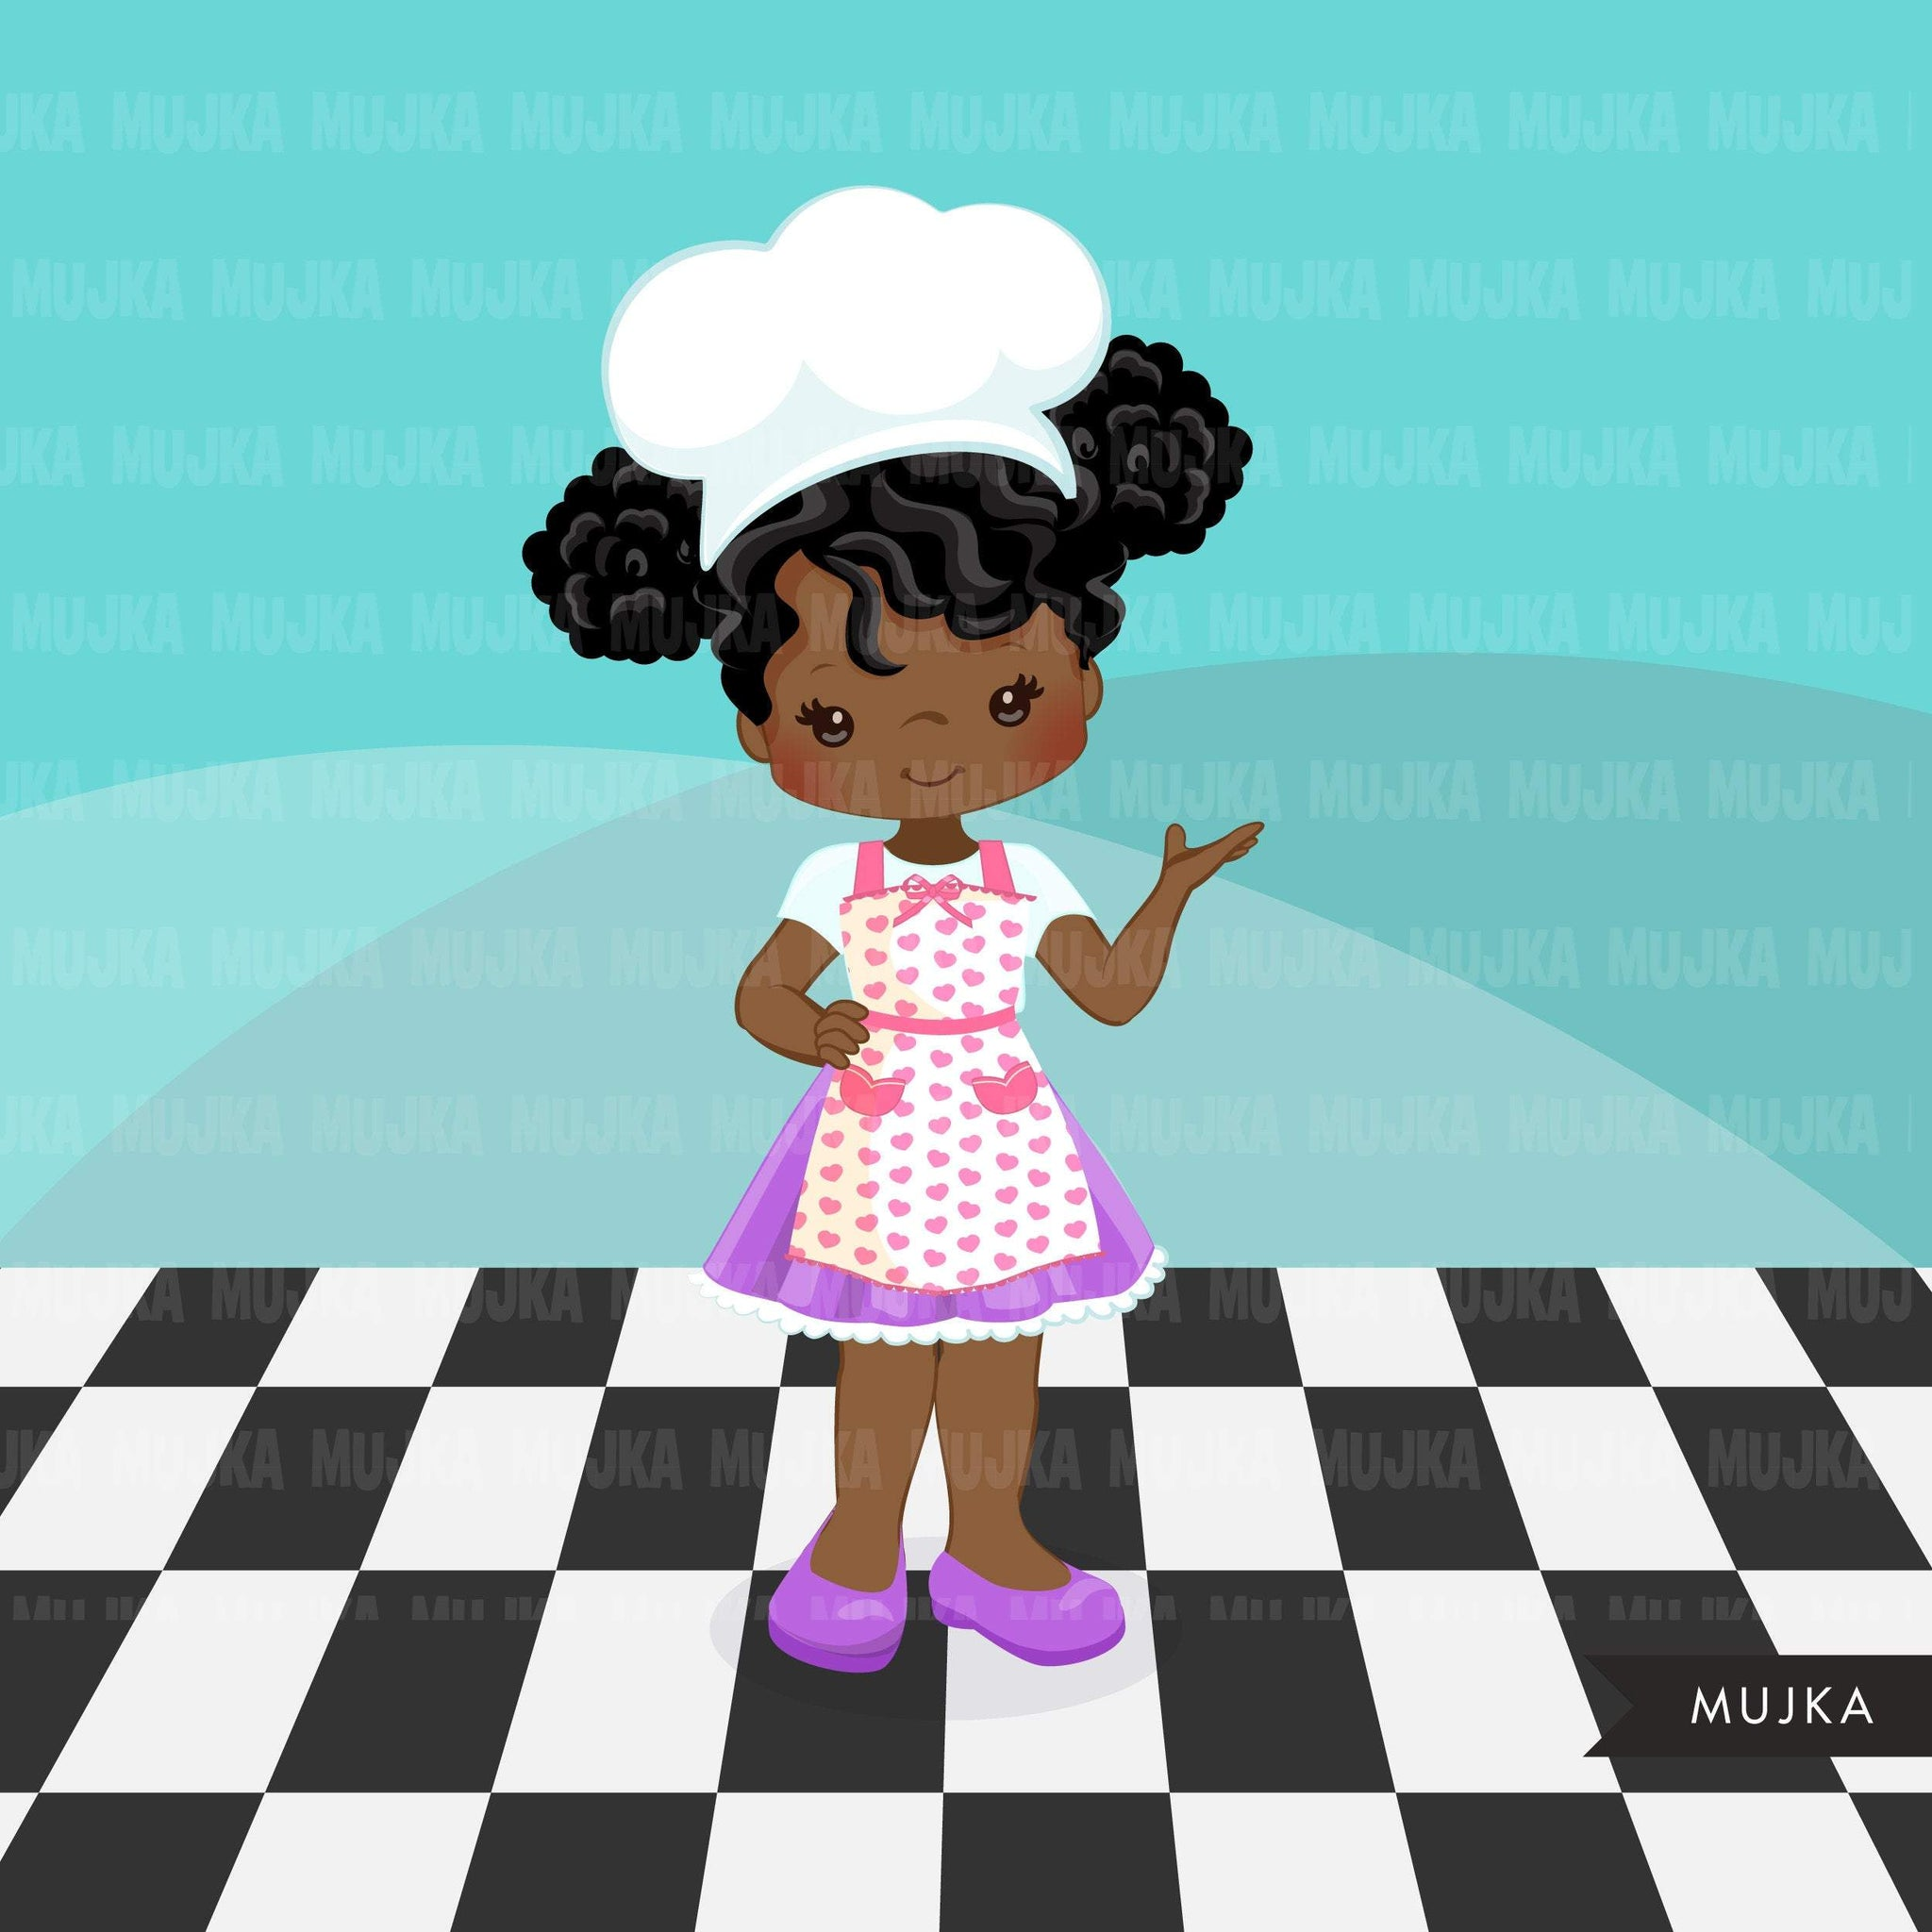 Baking Clipart, Cute afro baker girl characters, kitchen chores, baking party, cake, spatula, pastry chef, cookie graphics, baking fun clip art